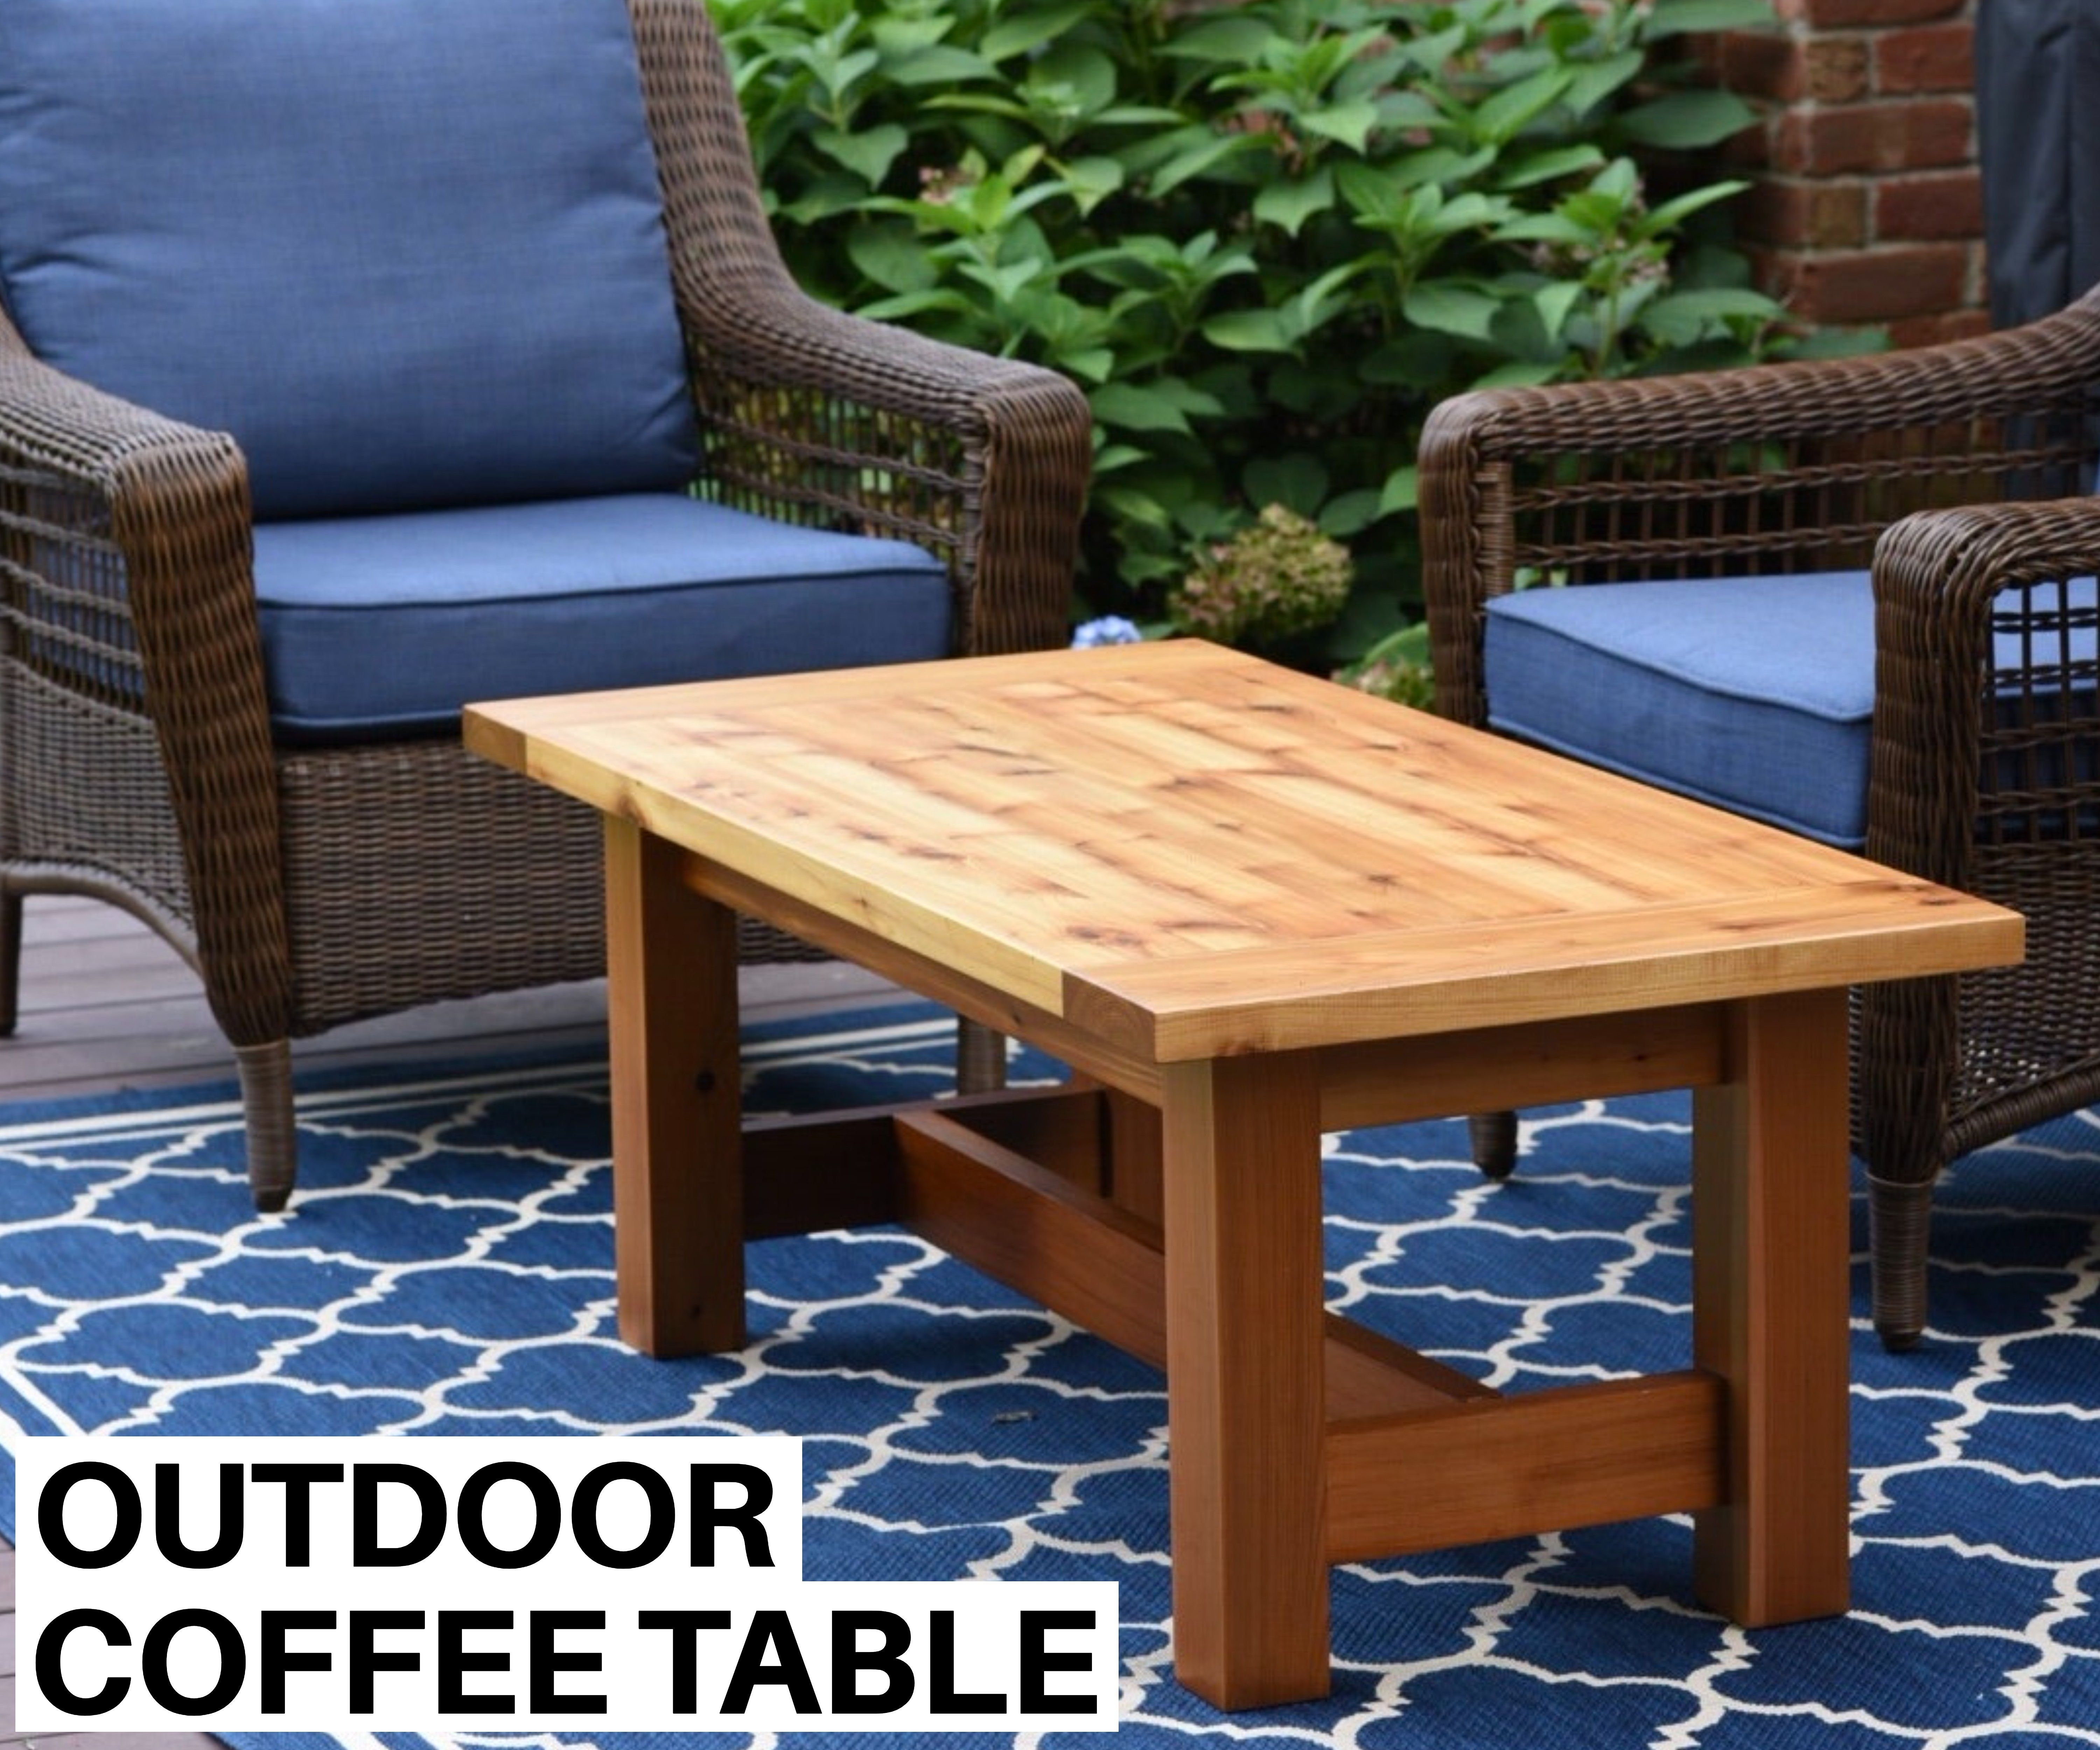 Build an Outdoor Coffee Table